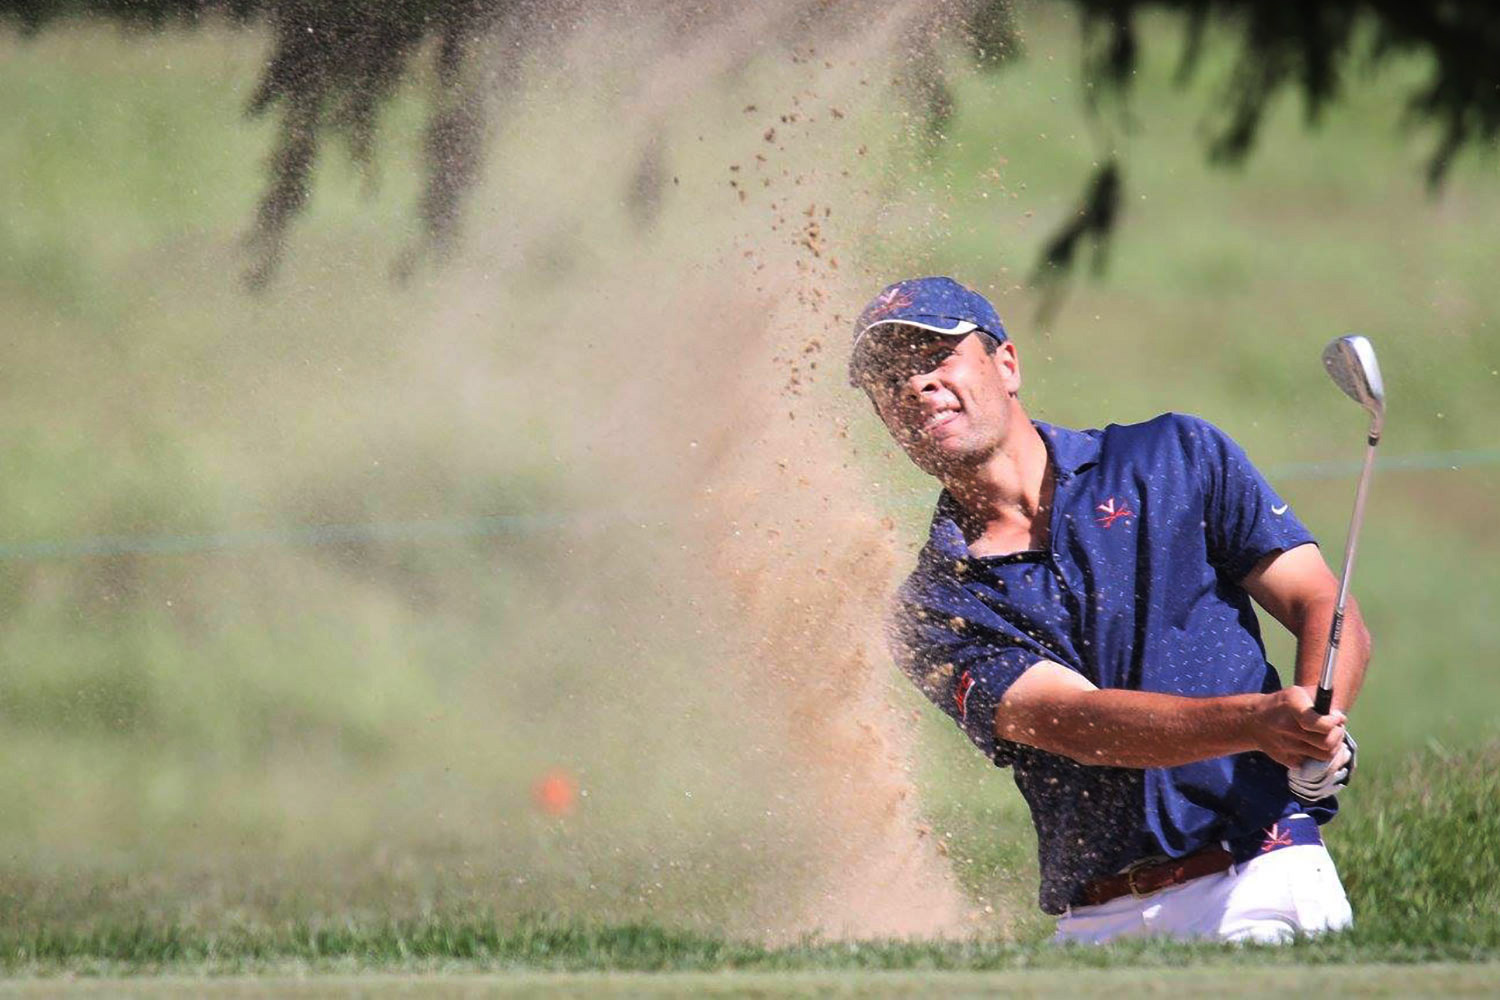 The NCAA Championship marked the final competition for fourth-year standouts Derek Bard, pictured, and Jimmy Stanger.